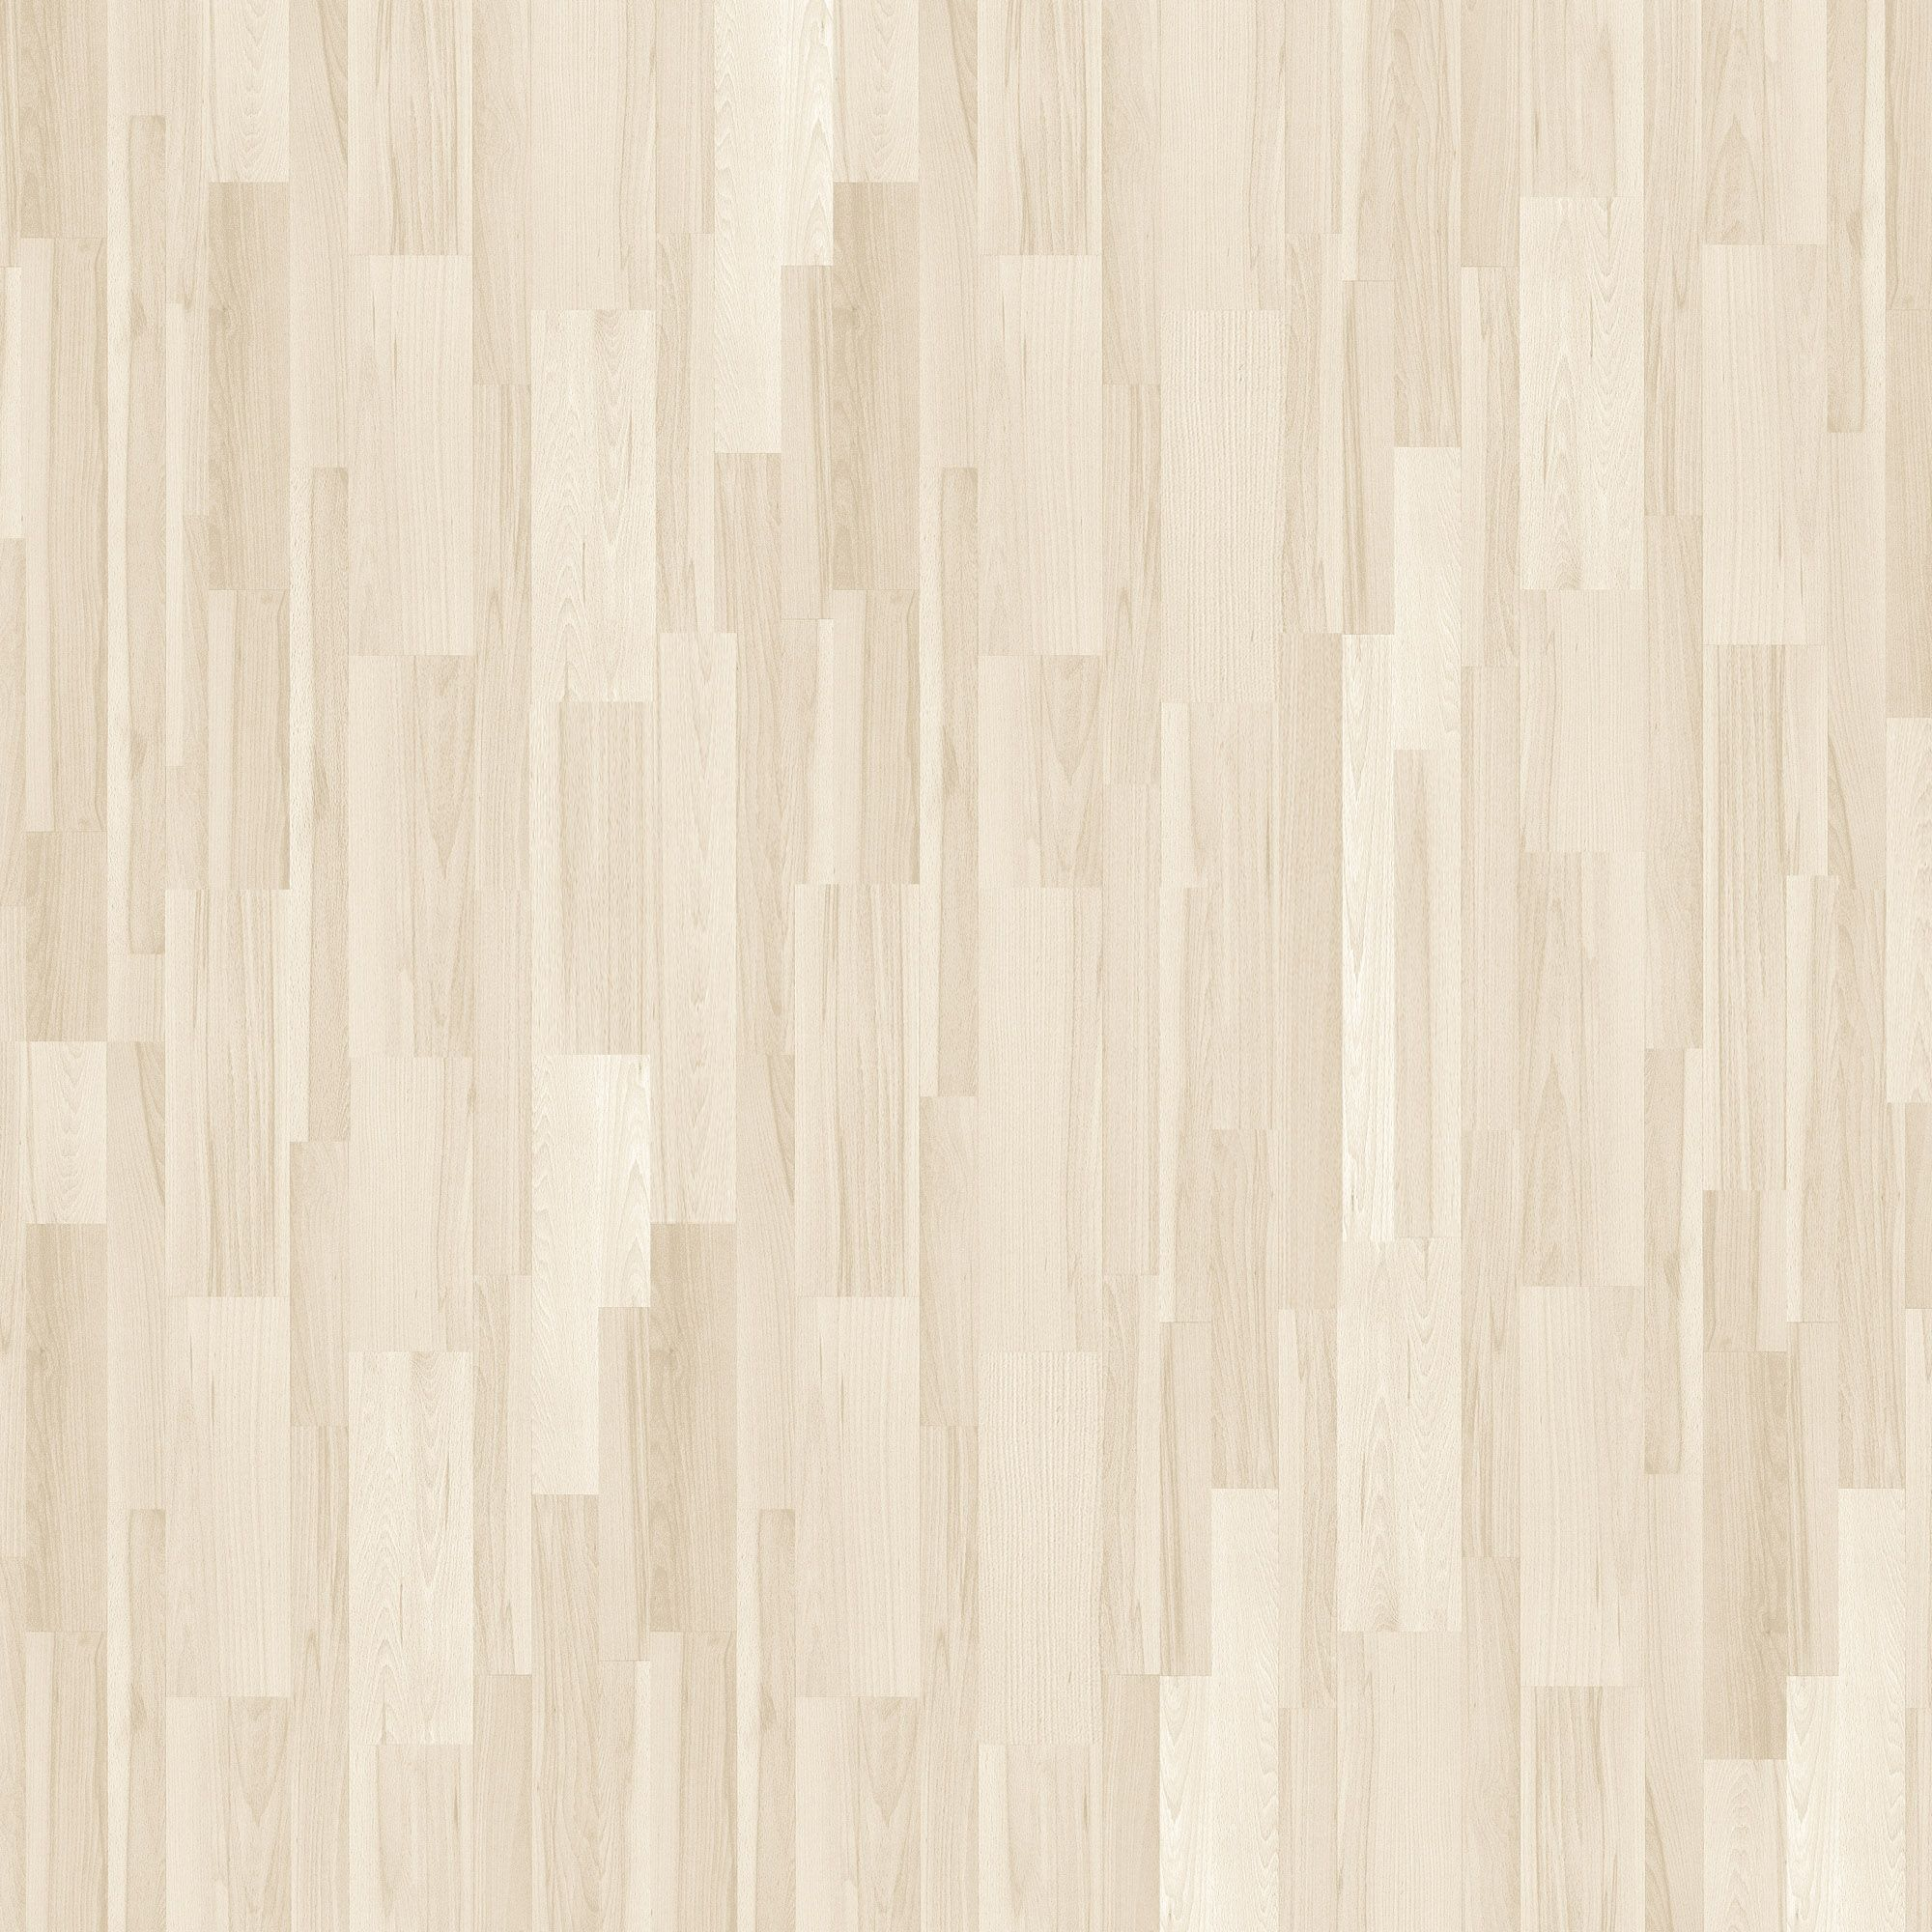 Off White Stone Flooring 2013 09 Wood Planks White Hardwood Floor White Hardwood Floor Jpg Jpg White Hardwood Floors Light Wood Floors Flooring